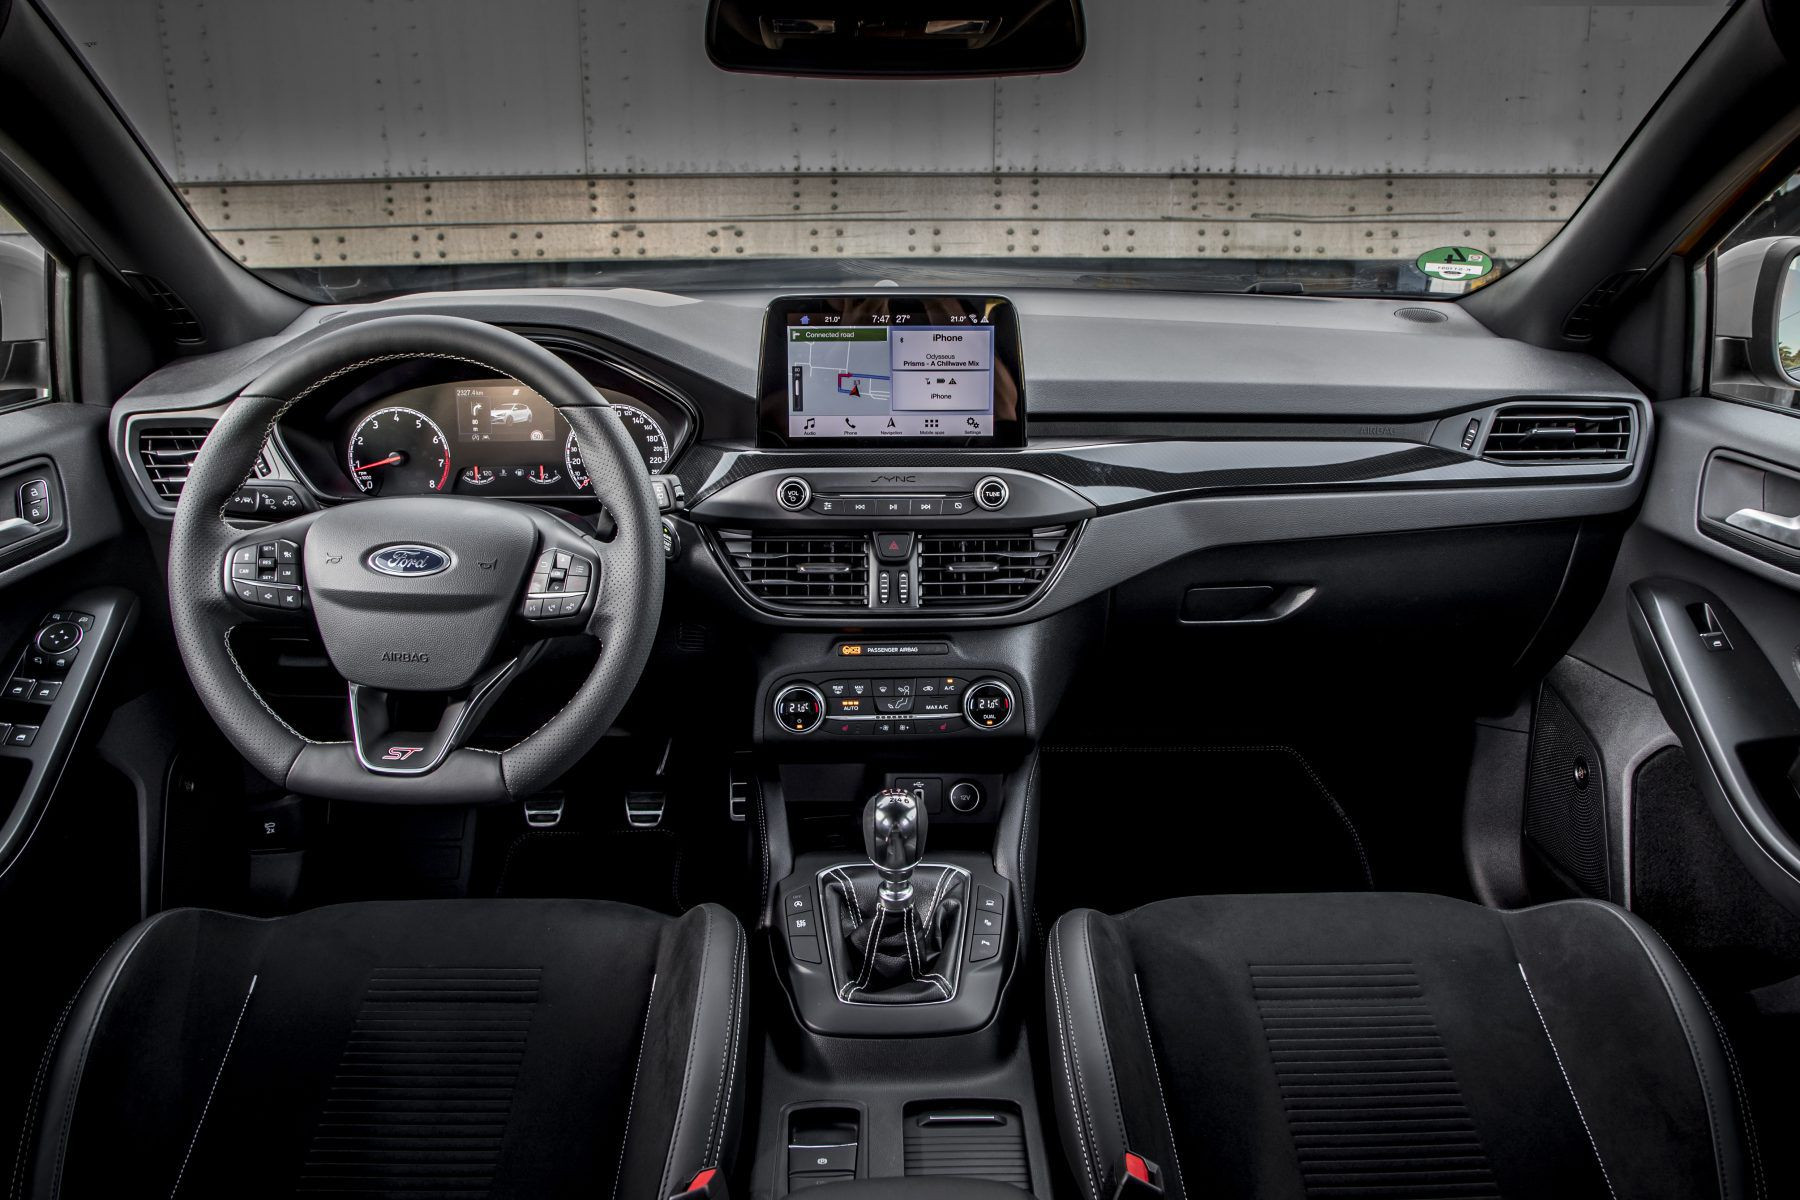 inside of Ford Focus ST